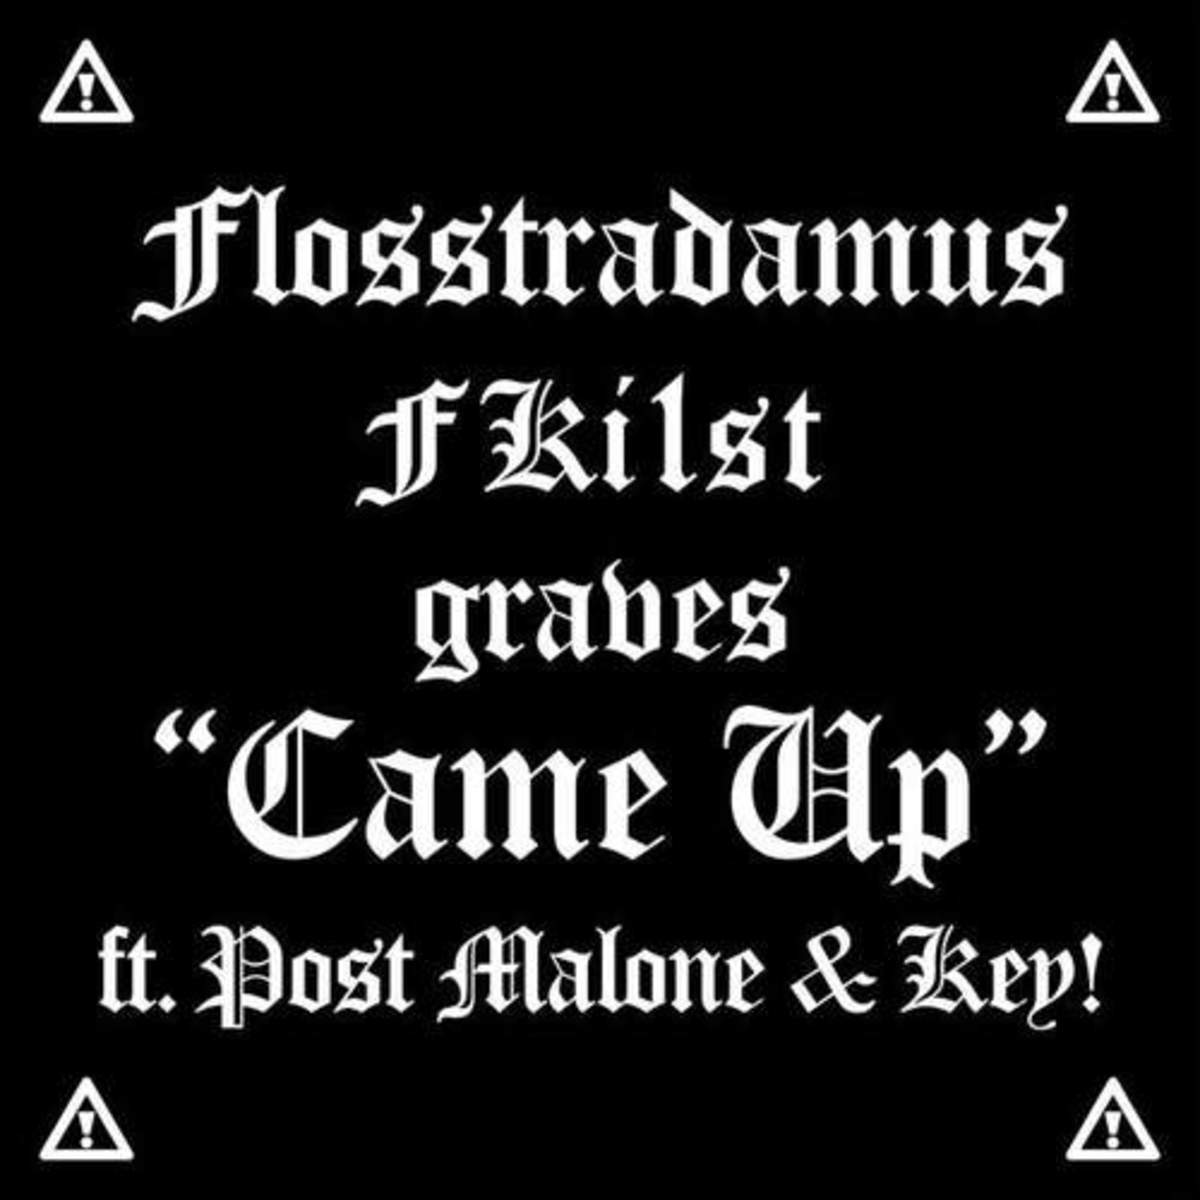 flosstradamus-came-up.jpeg